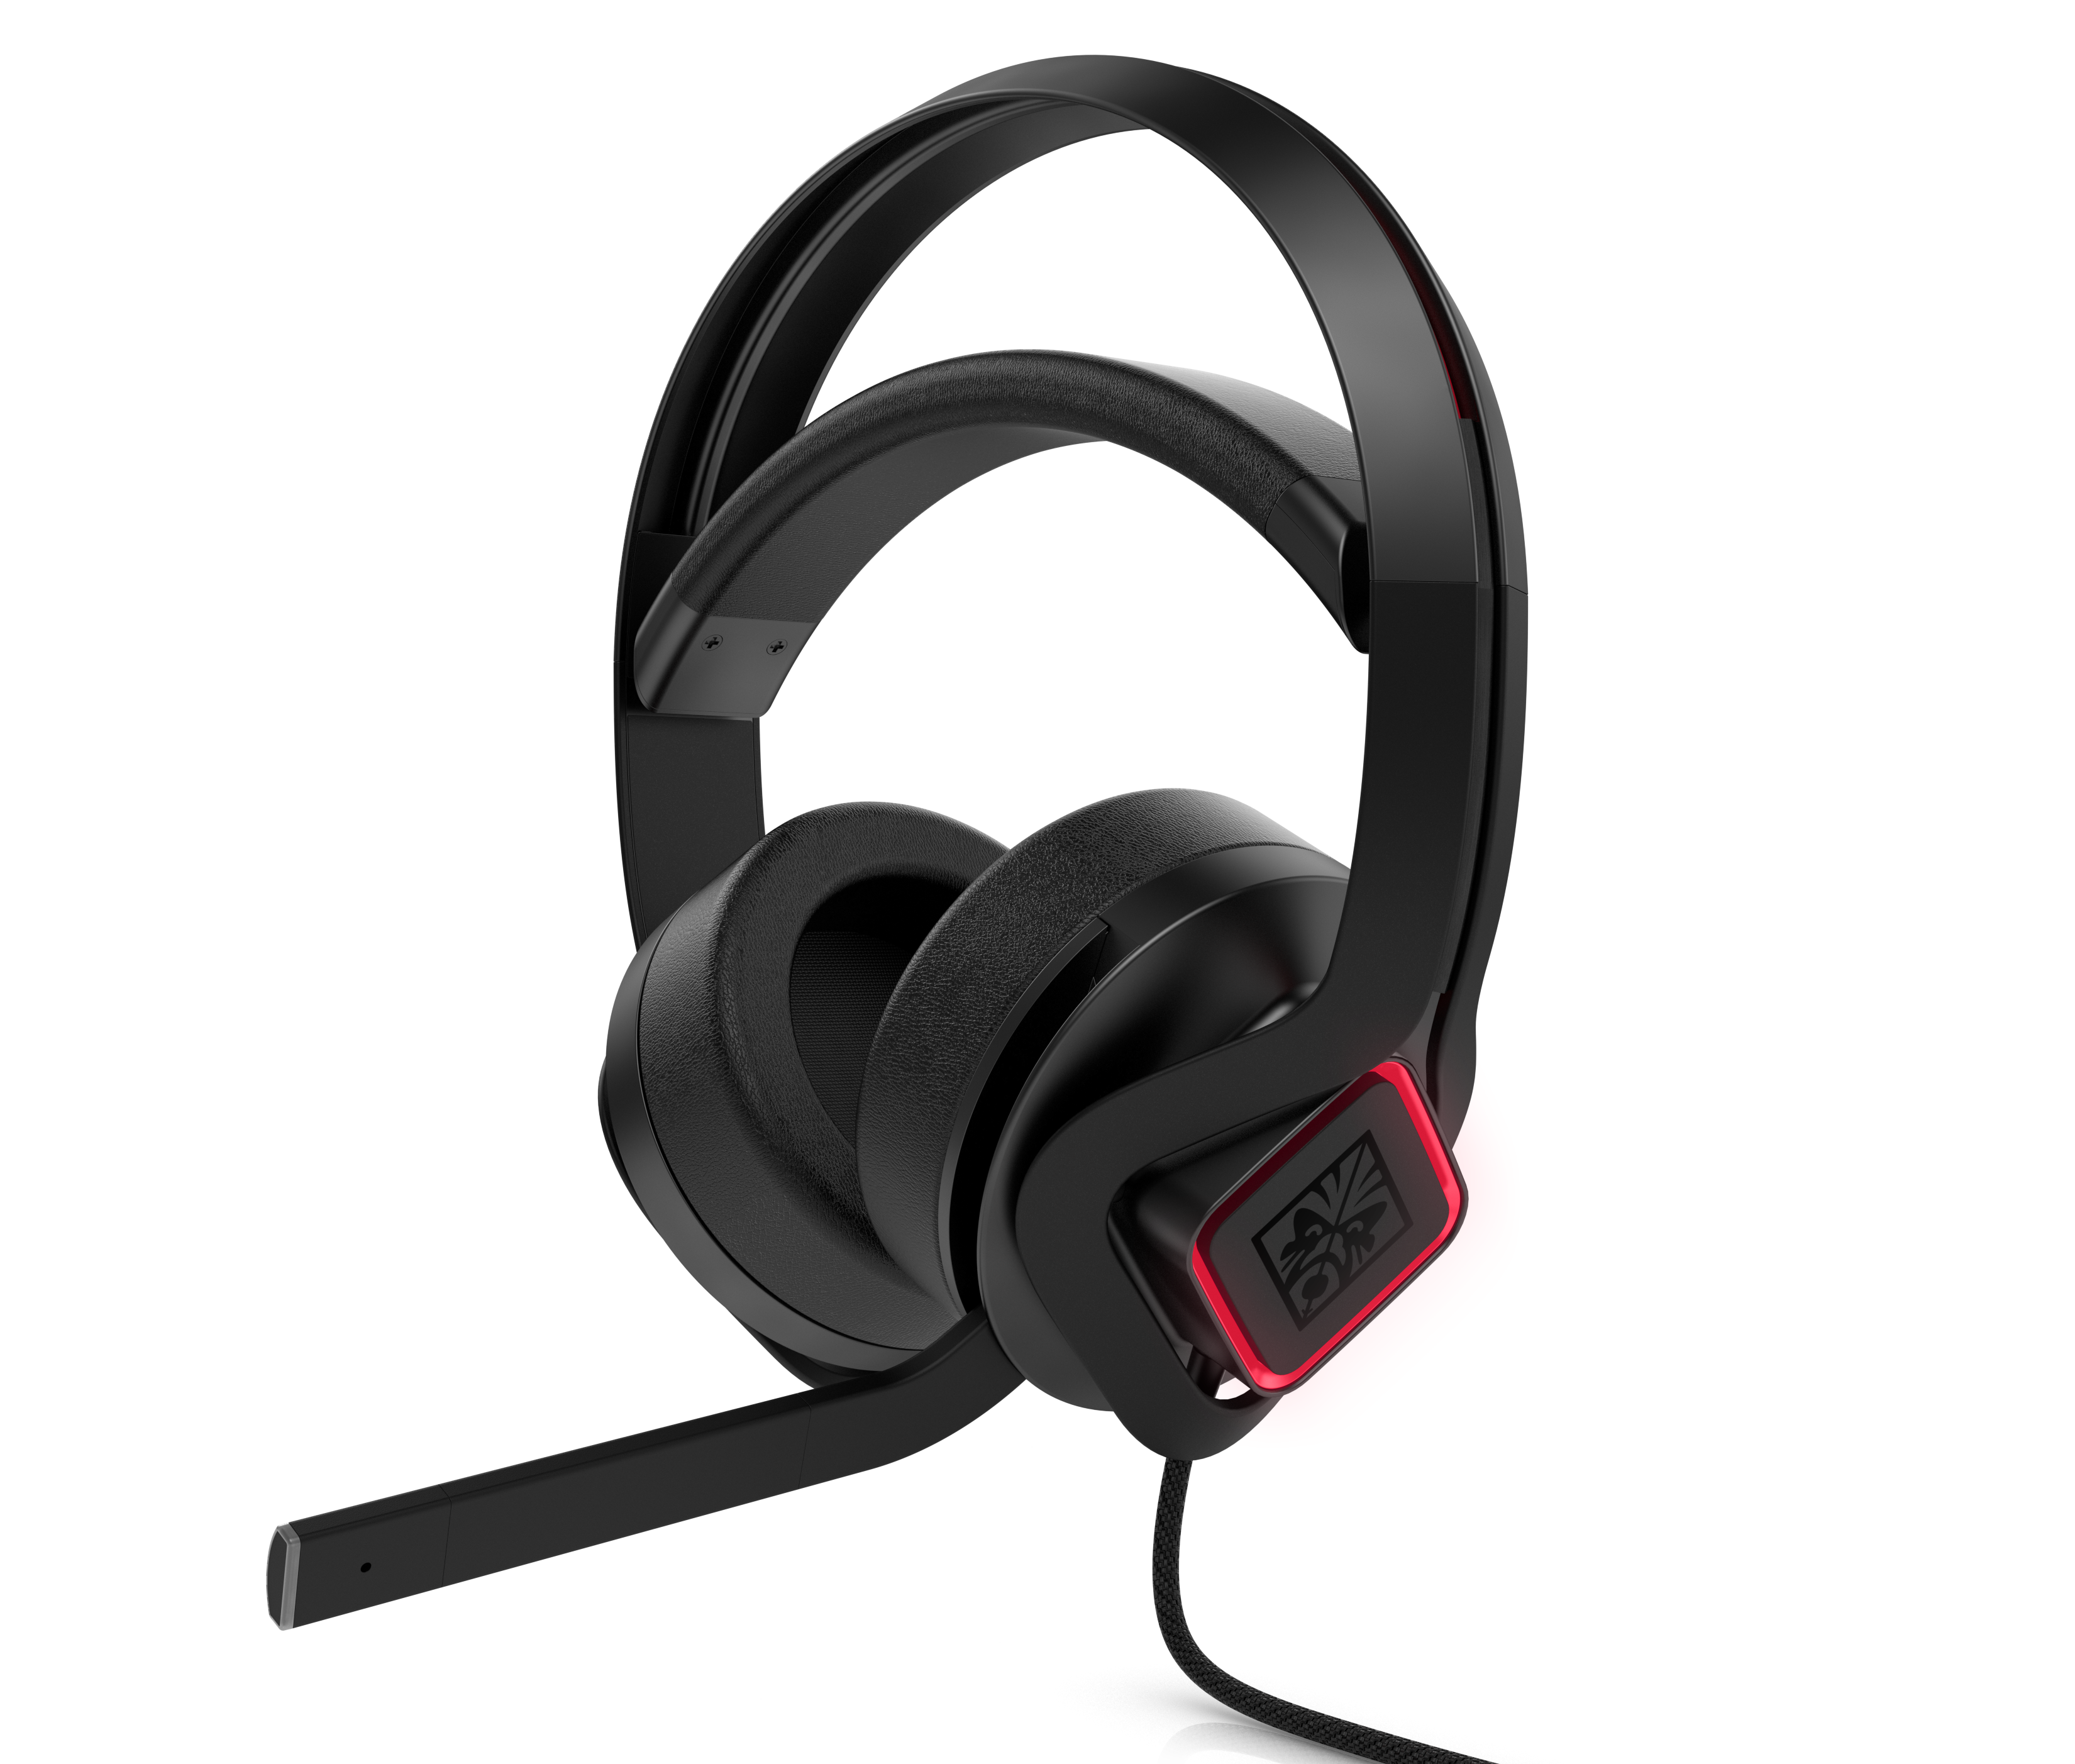 omen-by-hp-mindframe-headset-front-left-closeup